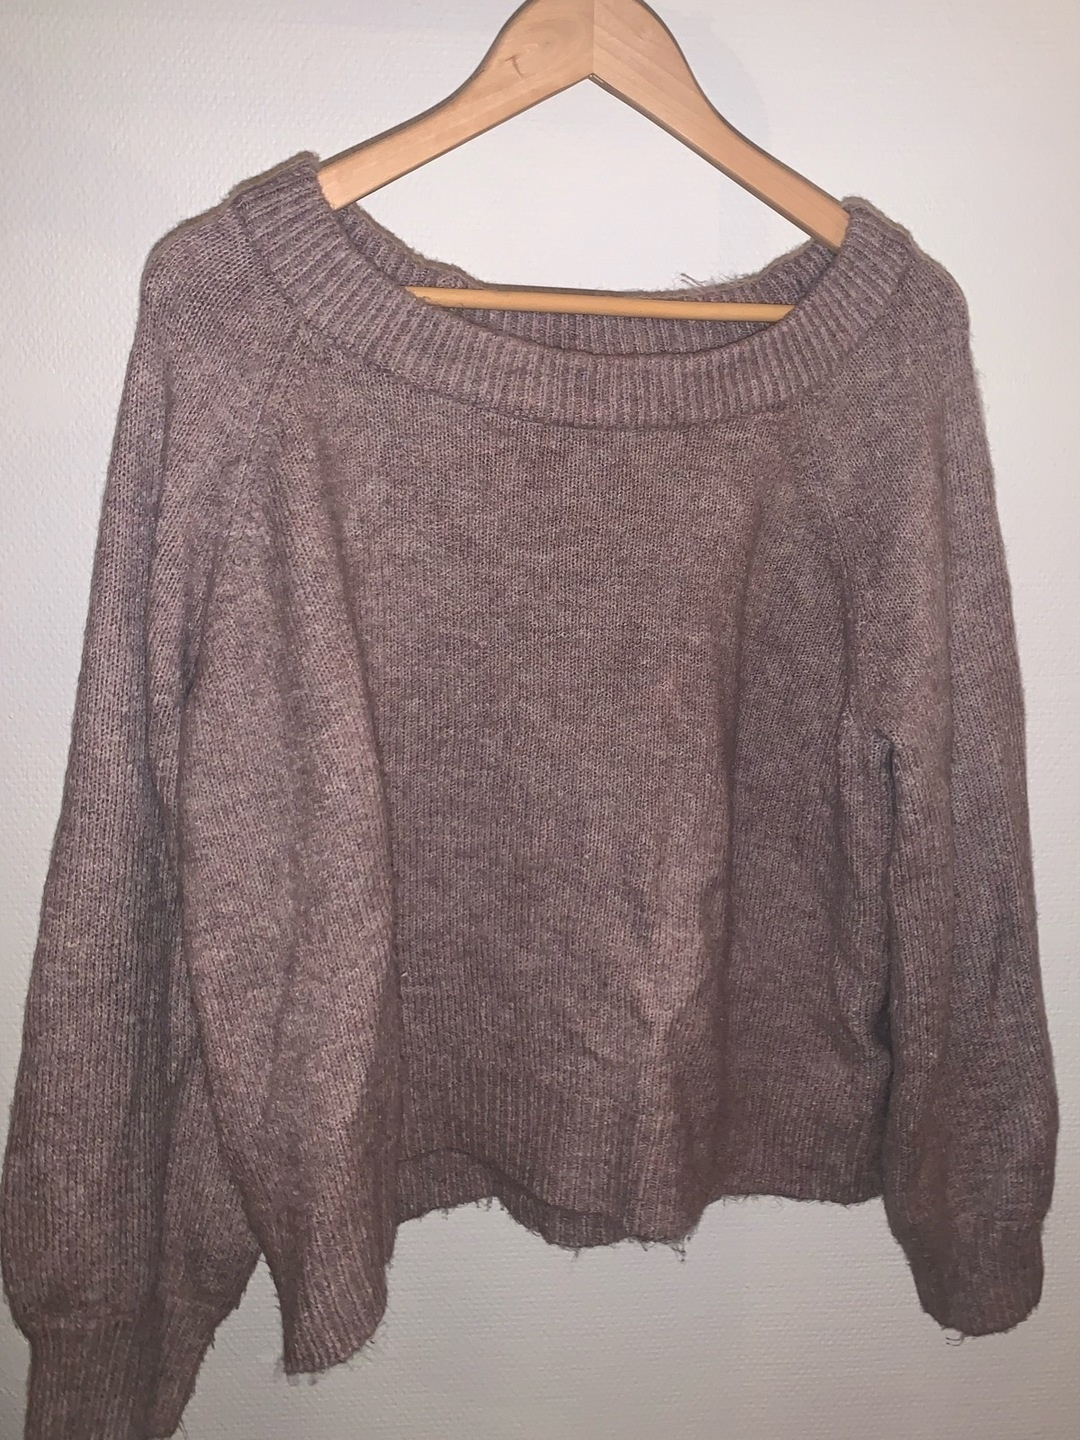 Damen kapuzenpullover & sweatshirts - AMISU photo 2